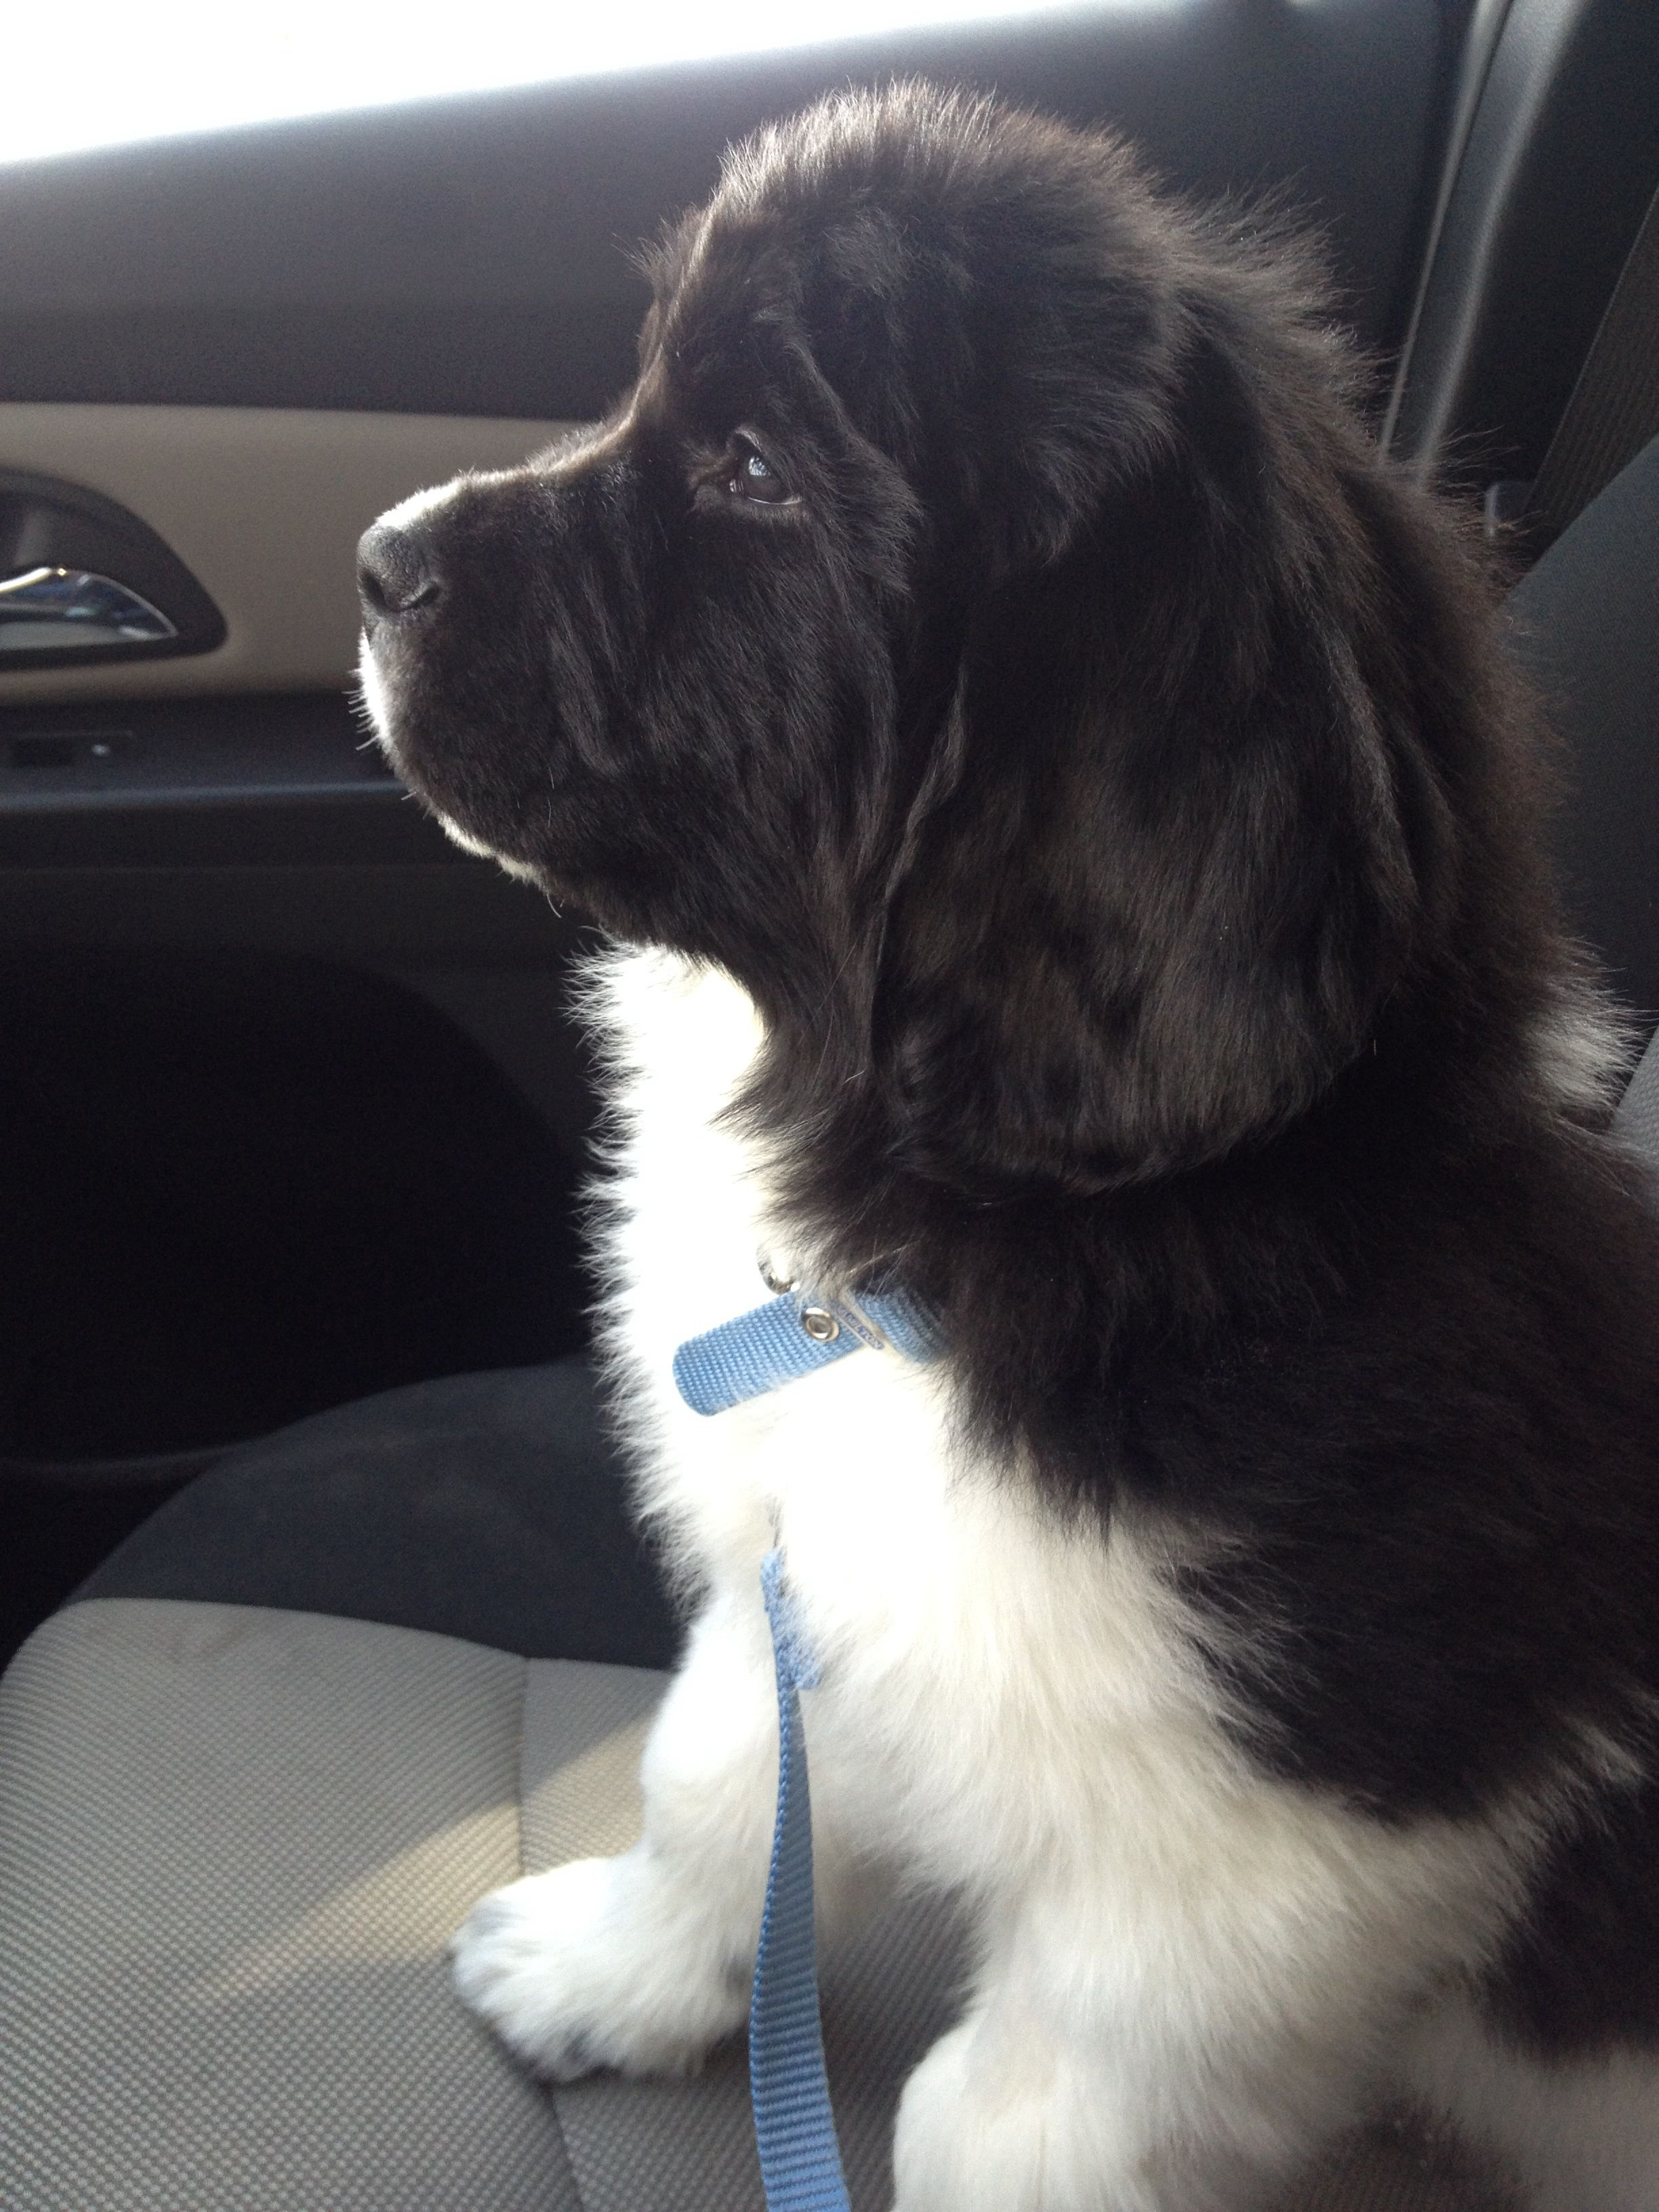 Sully Our Newfoundland Puppy At 8 Weeks Old With Images